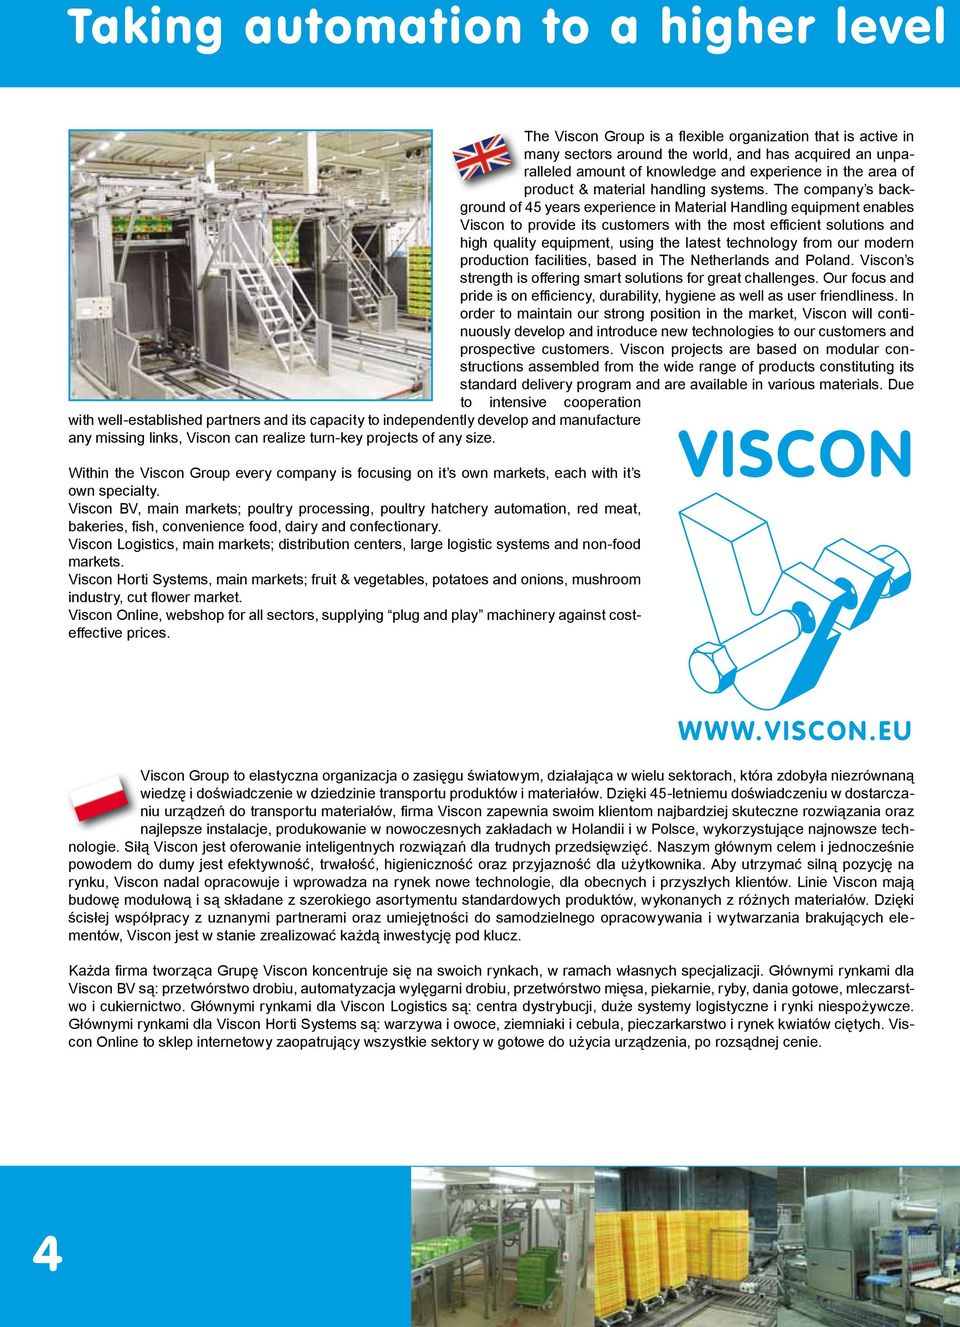 The company s background of 45 years experience in Material Handling equipment enables Viscon to provide its customers with the most efficient solutions and high quality equipment, using the latest